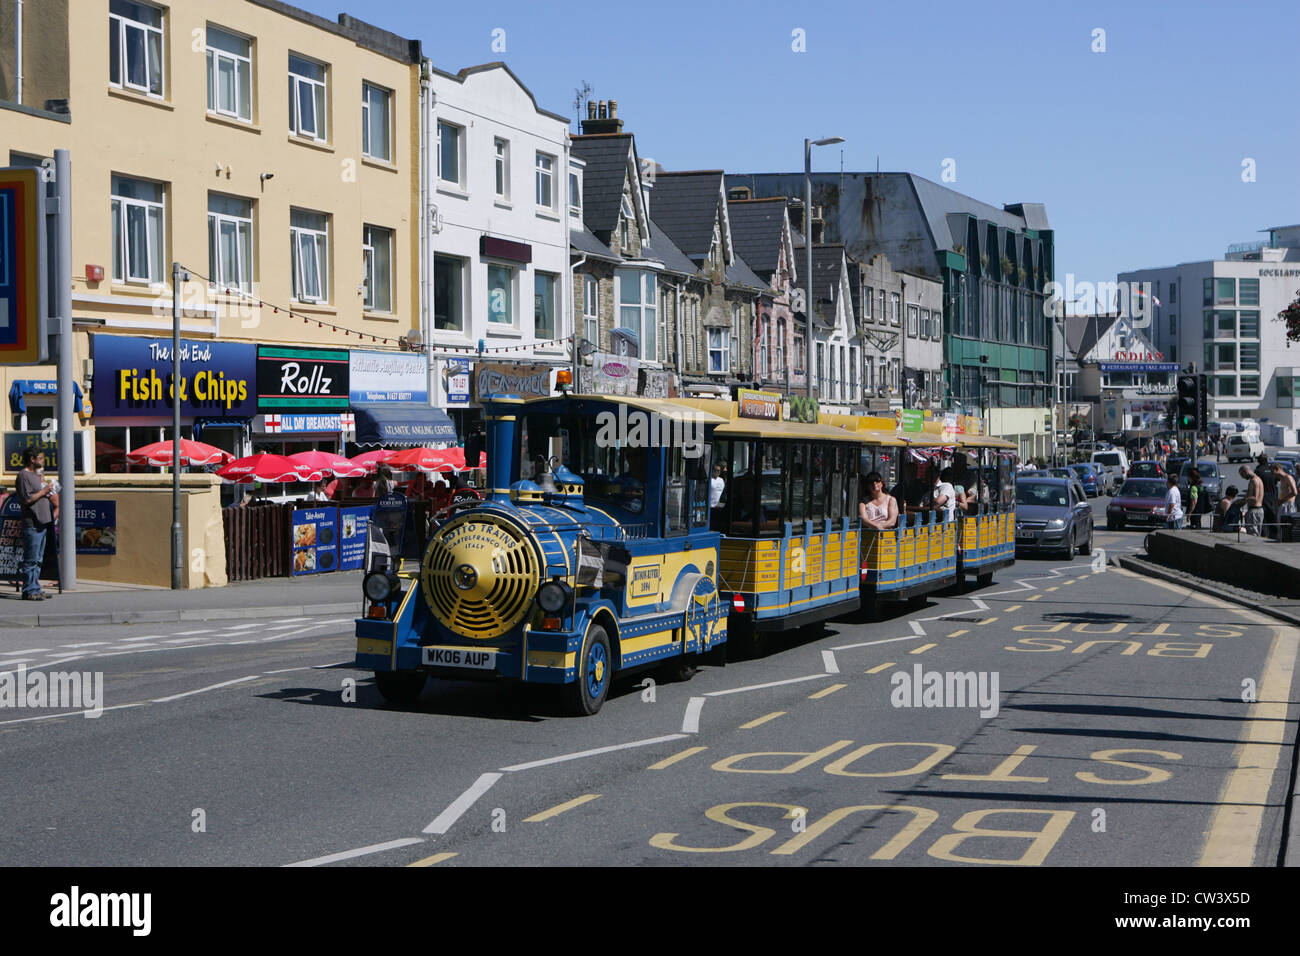 land train, newquay front - Stock Image